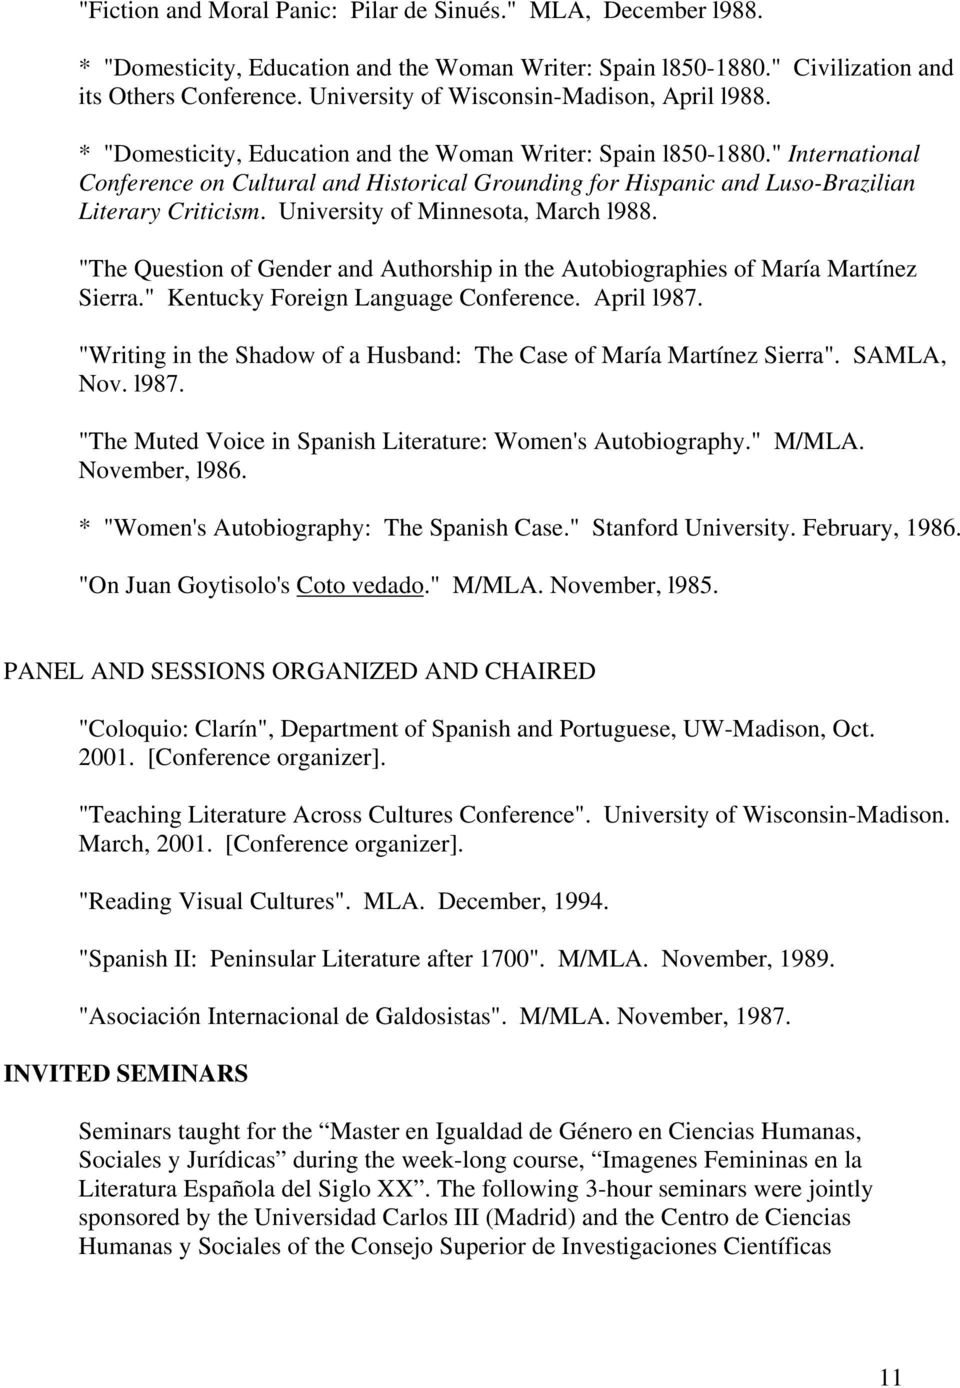 """ International Conference on Cultural and Historical Grounding for Hispanic and Luso-Brazilian Literary Criticism. University of Minnesota, March l988."